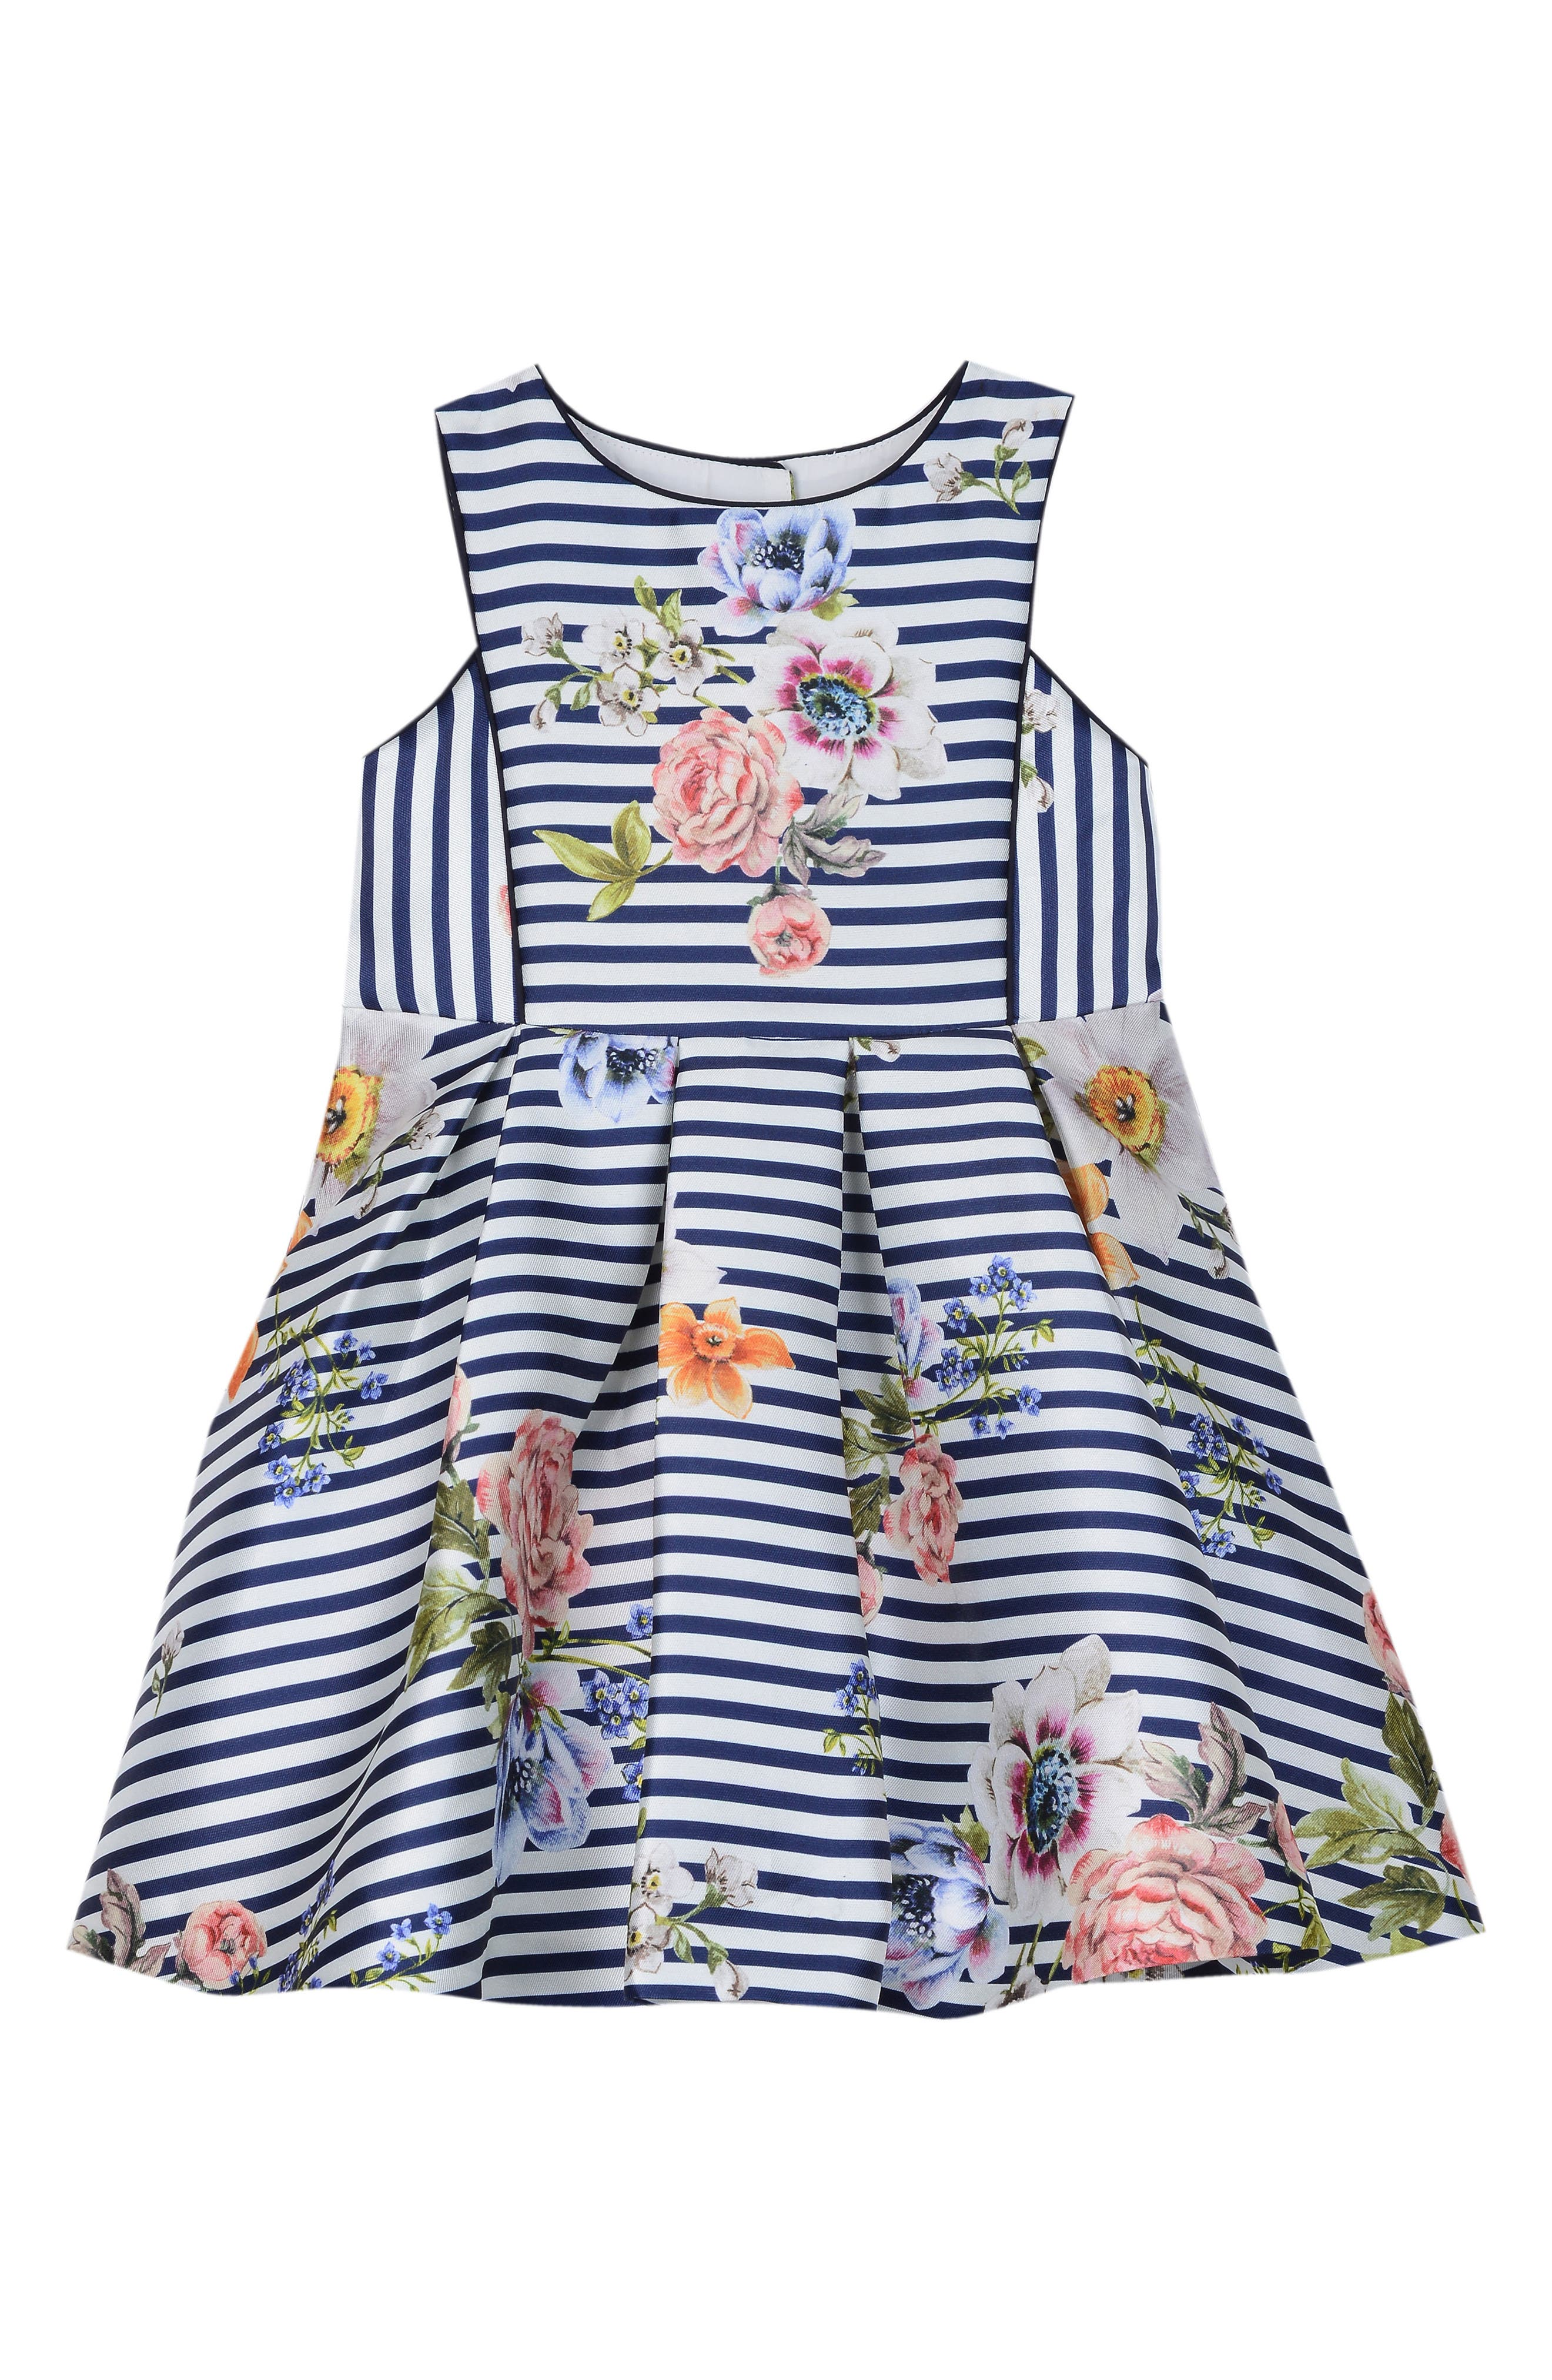 Floral Stripe Fit & Flare Dress,                             Main thumbnail 1, color,                             NAVY/ WHITE